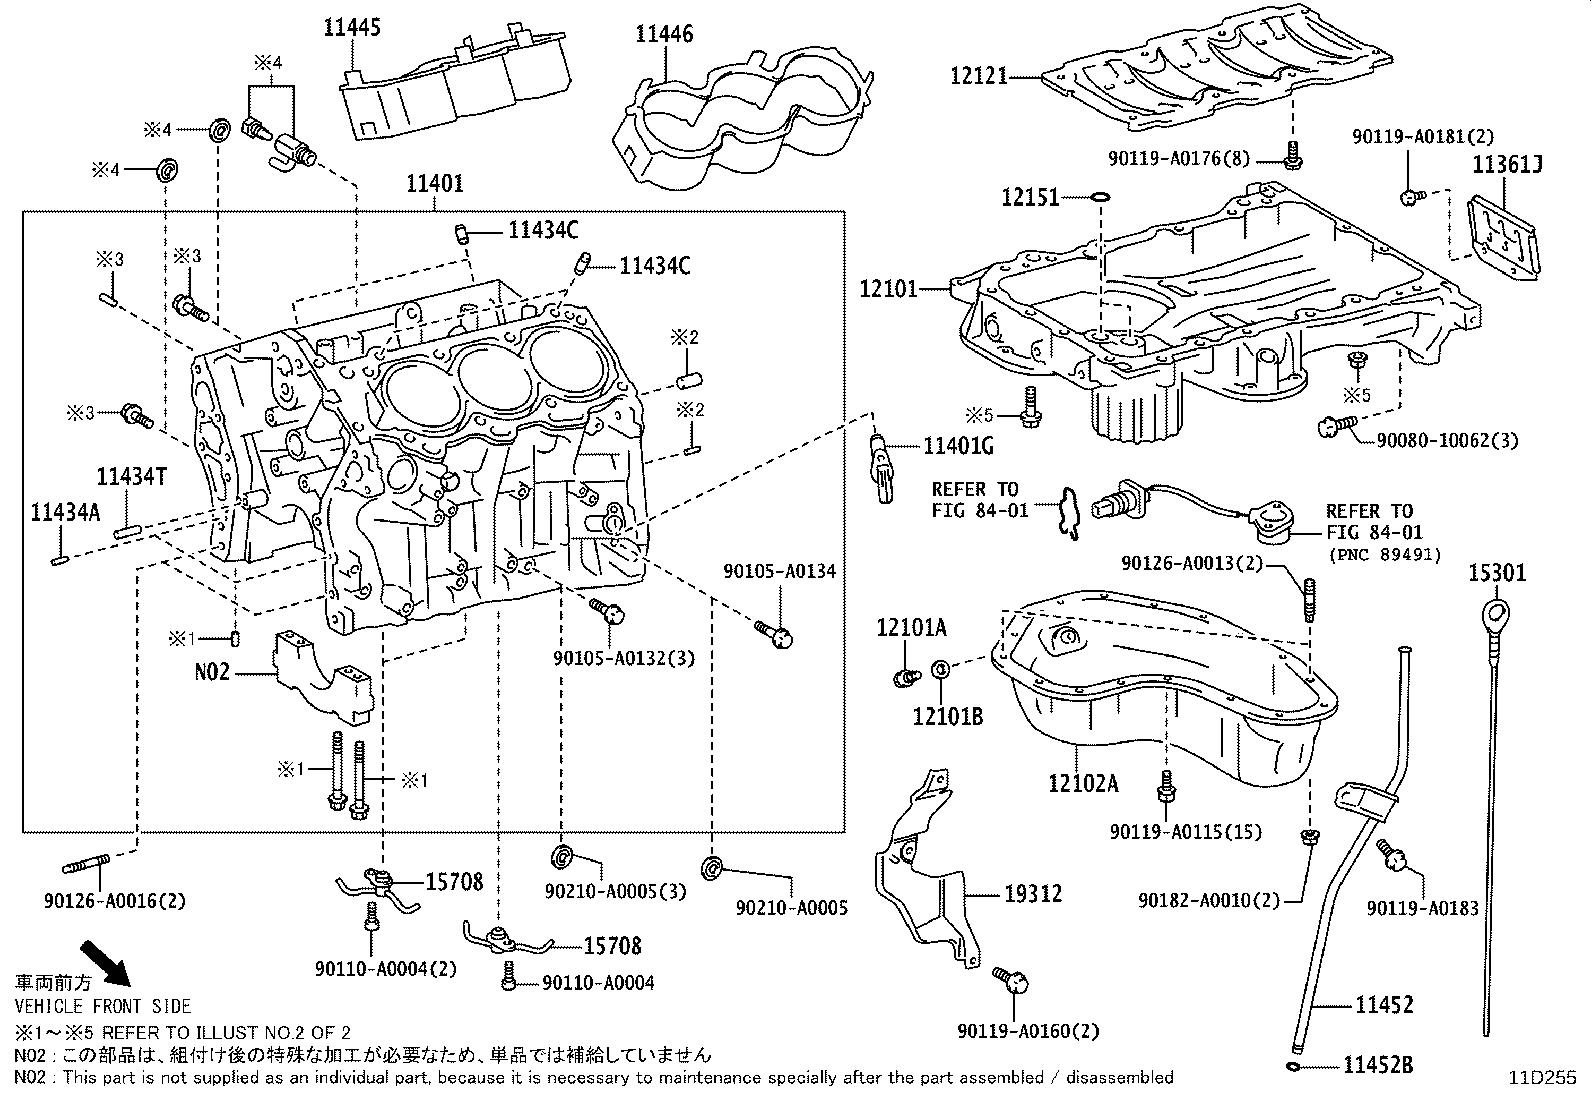 Toyota Avalon Engine Crankshaft Position Sensor